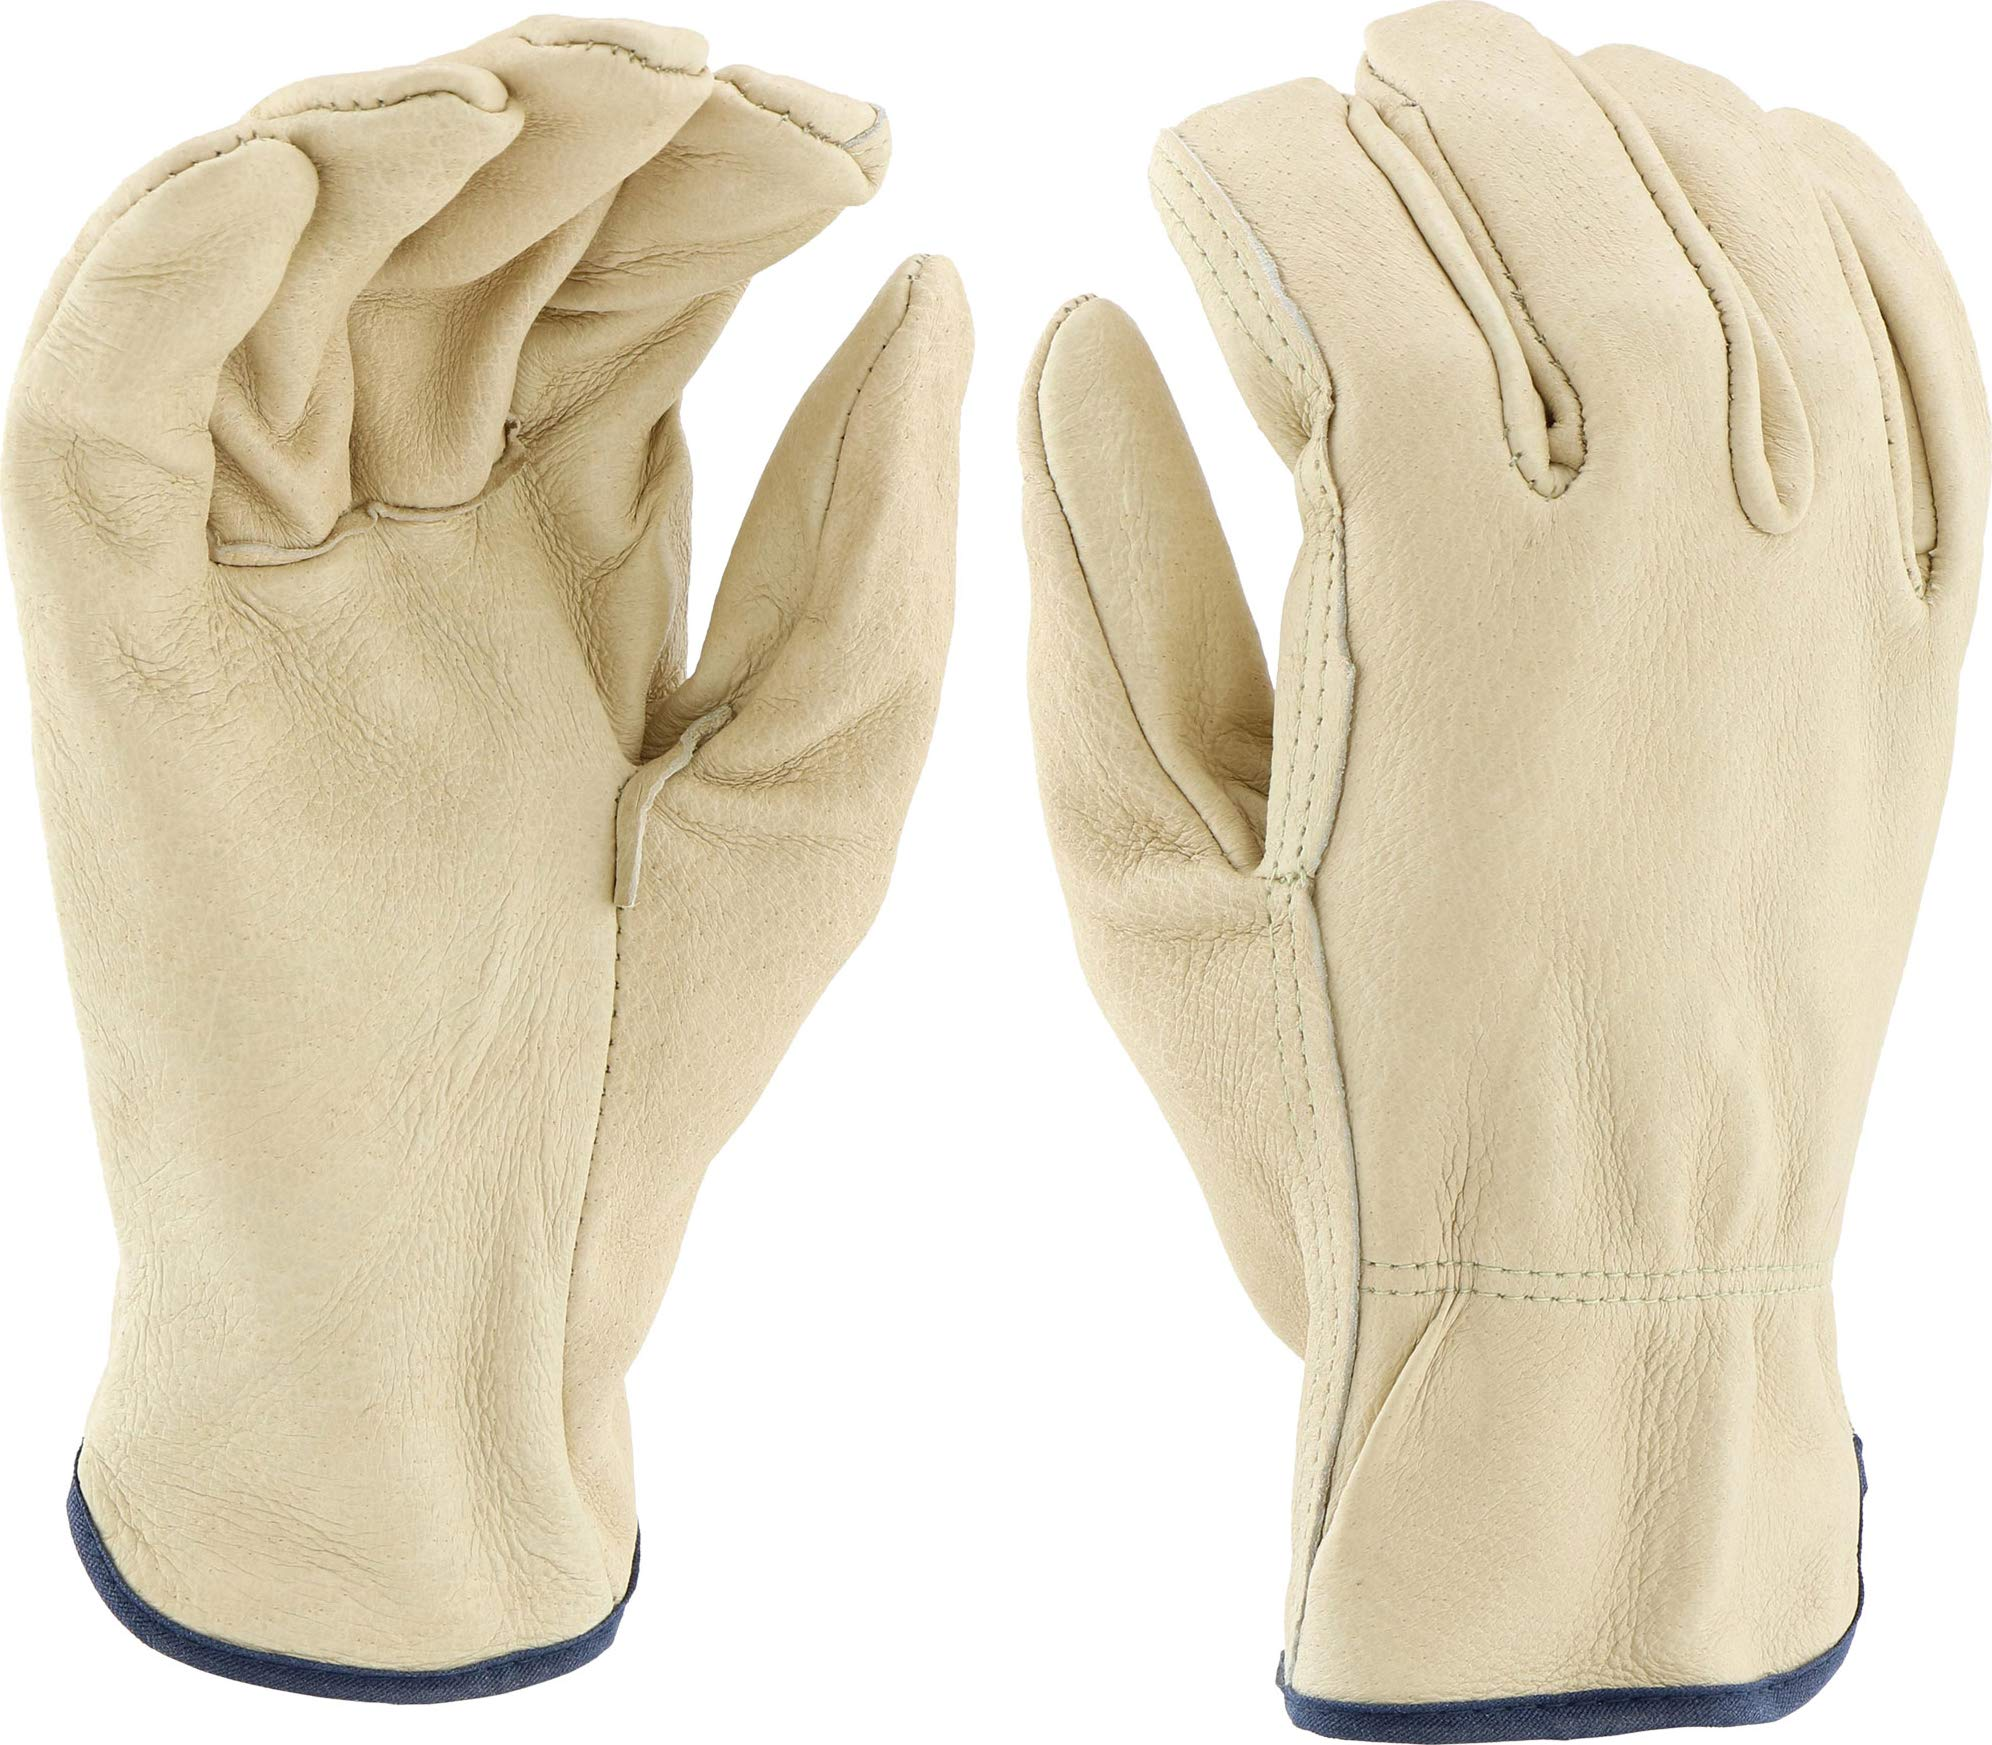 West Chester 994 Select Grain Pigskin Leather Driver Work Gloves: Straight Thumb, Large, 12 Pairs by West Chester